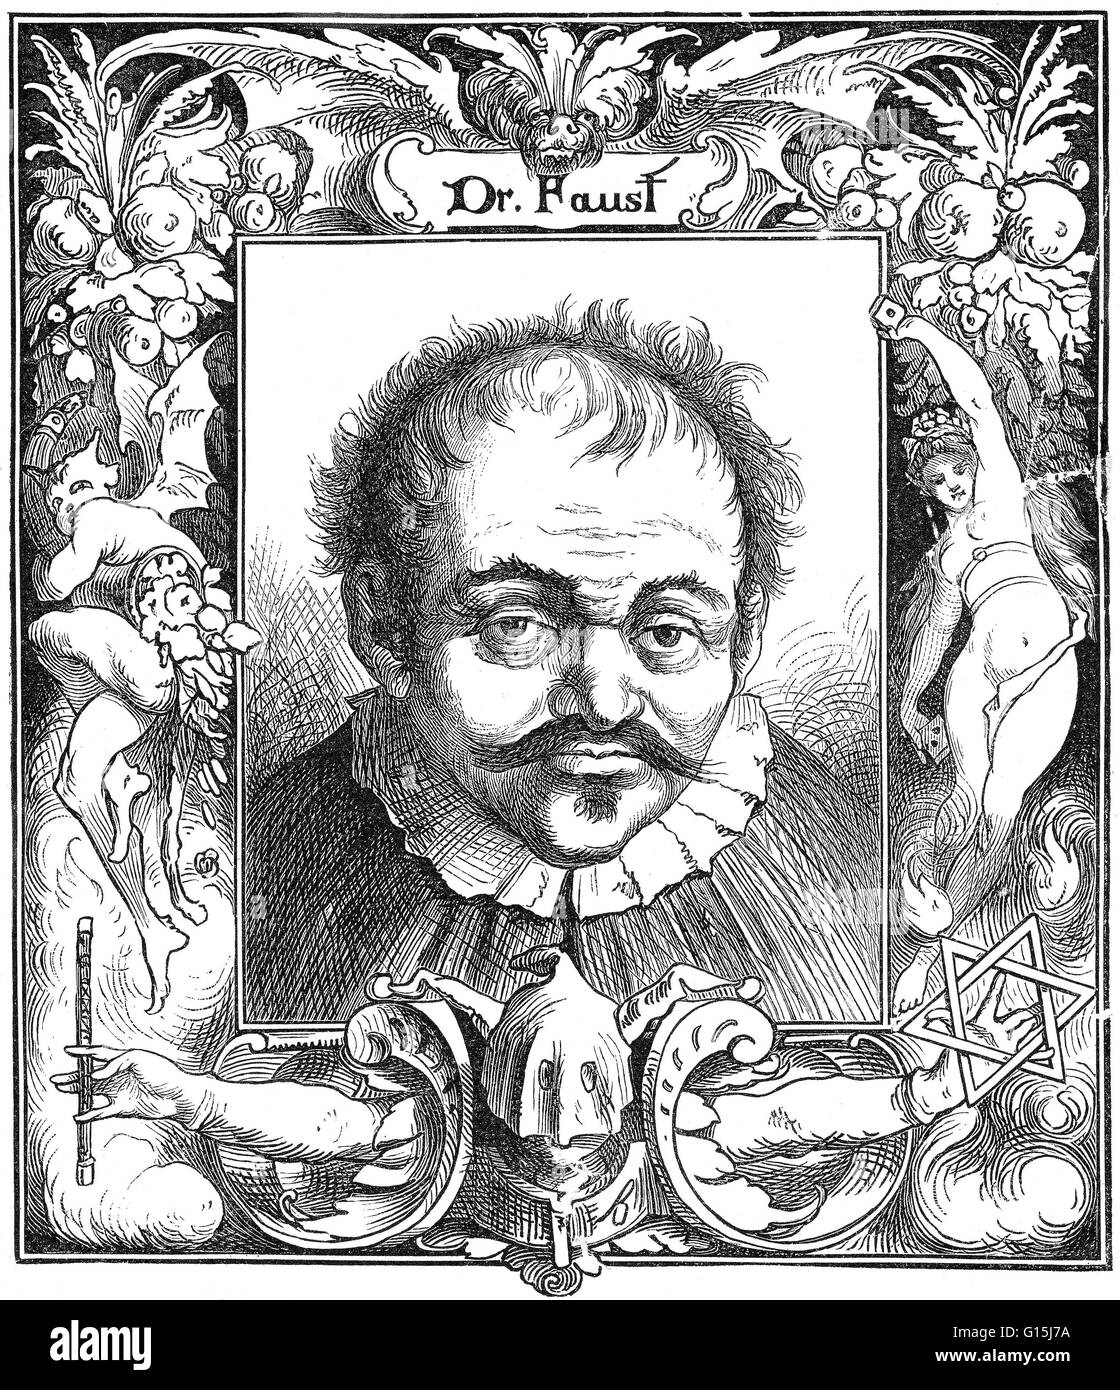 Doctor Johann Georg Faust (1480-1540), also known as John Faustus, was an itinerant alchemist, astrologer, and magician - Stock Image